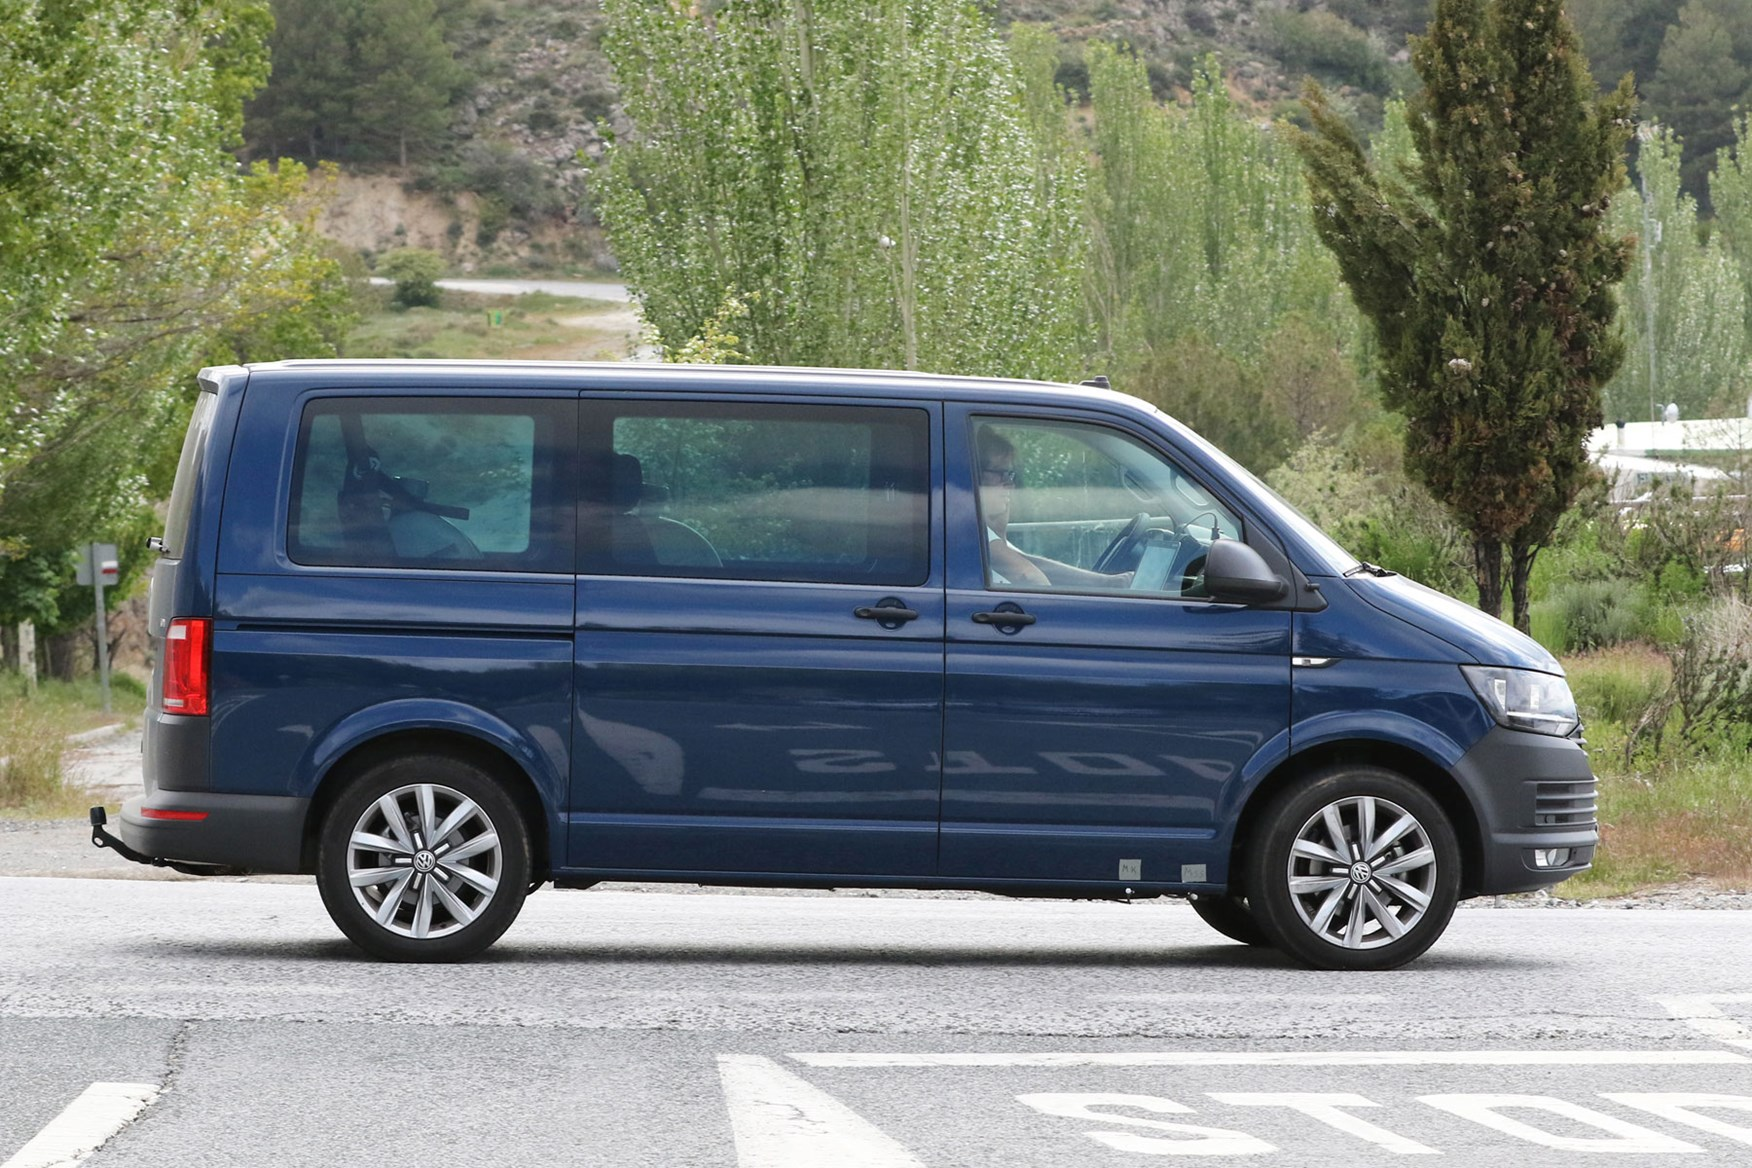 Vw Transporter 2019 Facelift Latest Spy Shots And Info About